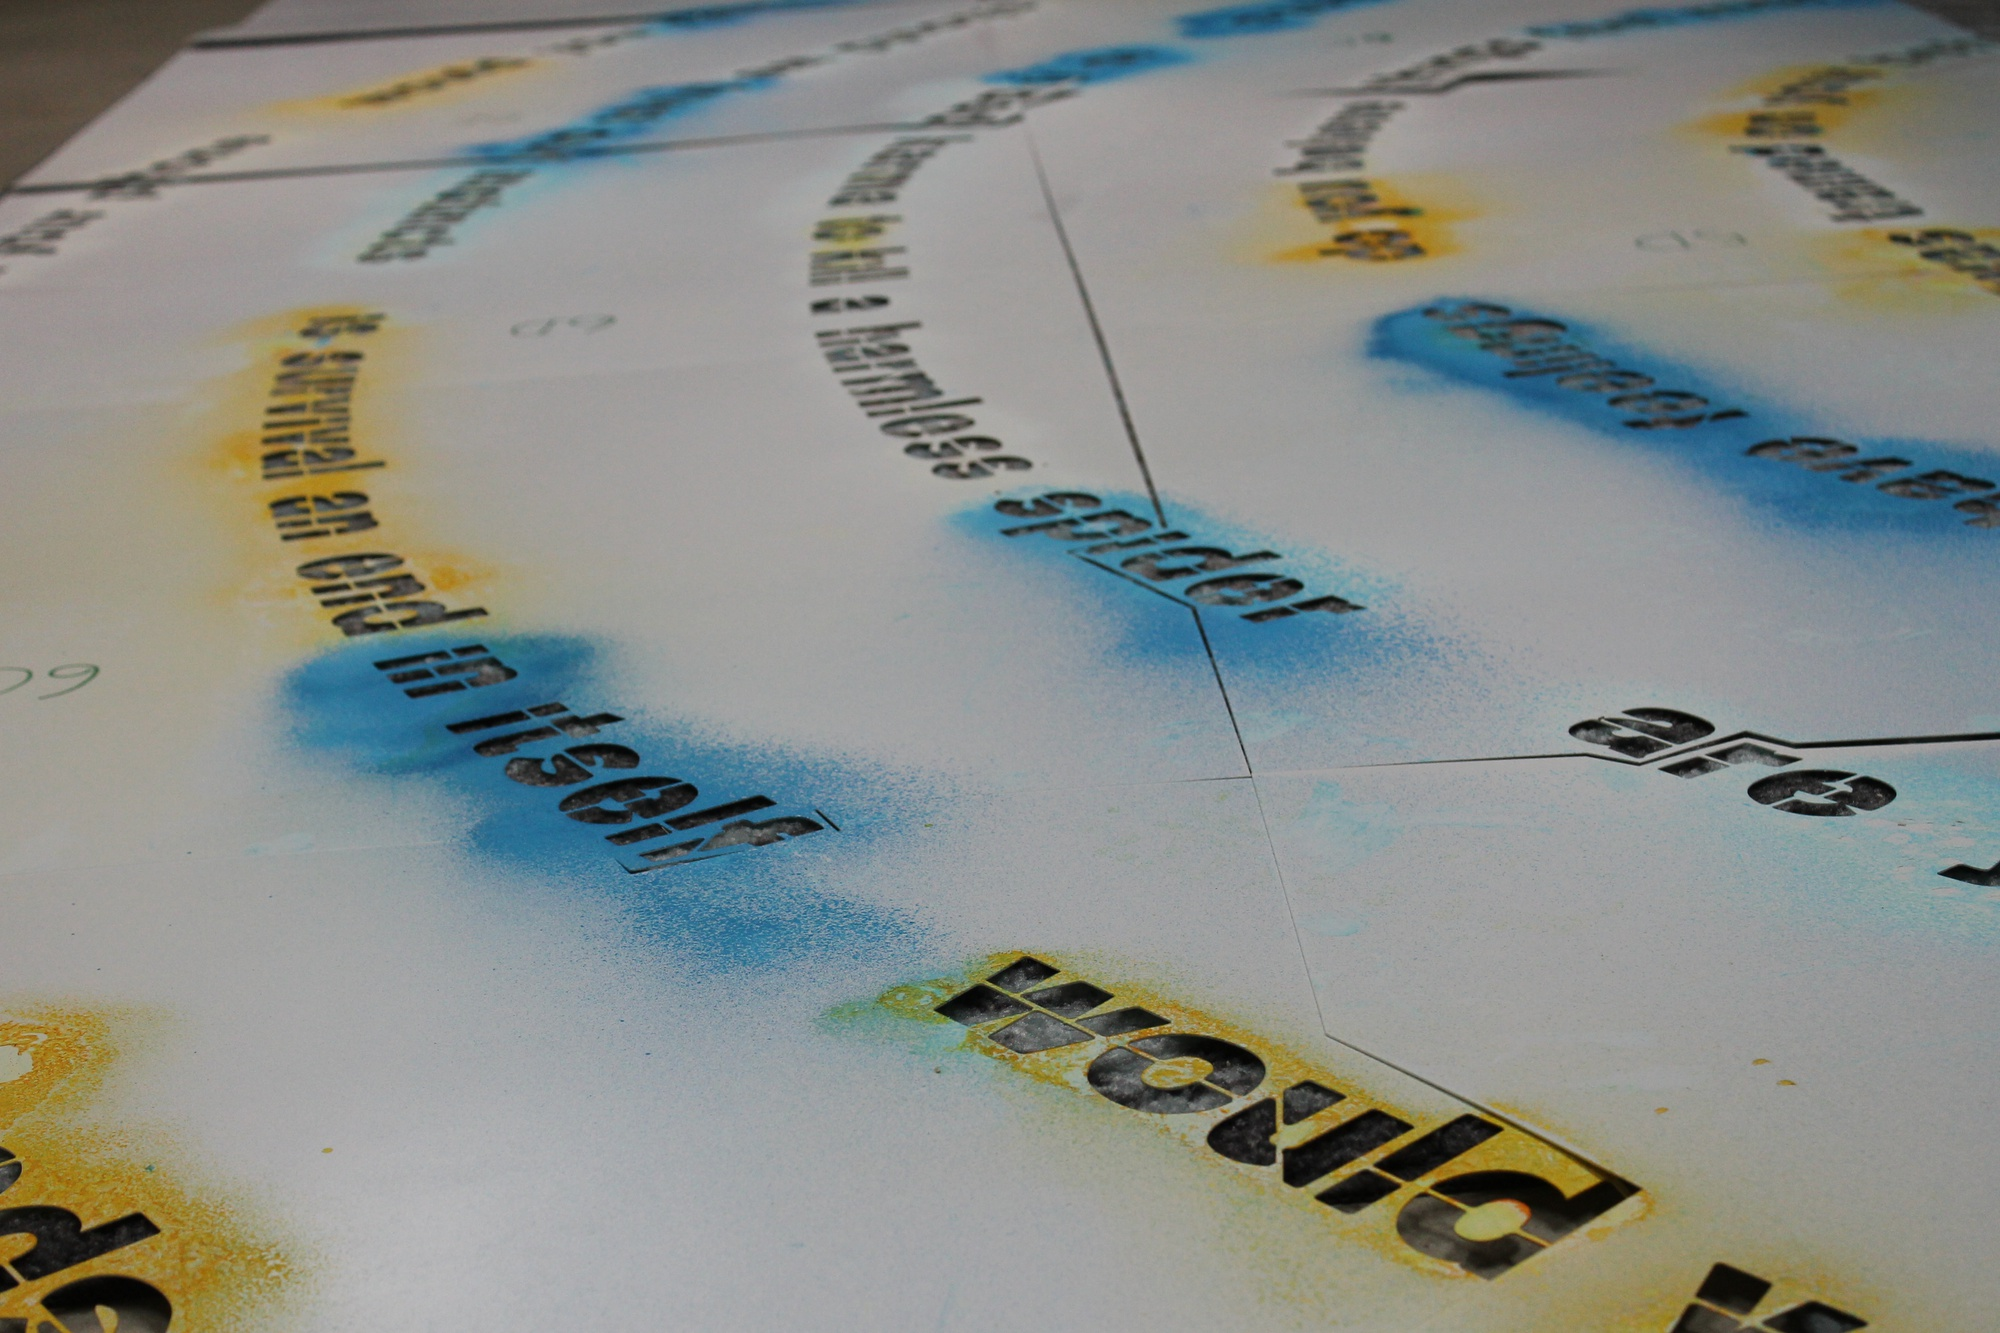 Sarah Newman has worked on multiple versions of the Moral Labyrinth, using varied mediums including blue and yellow spray chalk, sticky vinyl, and baking powder.